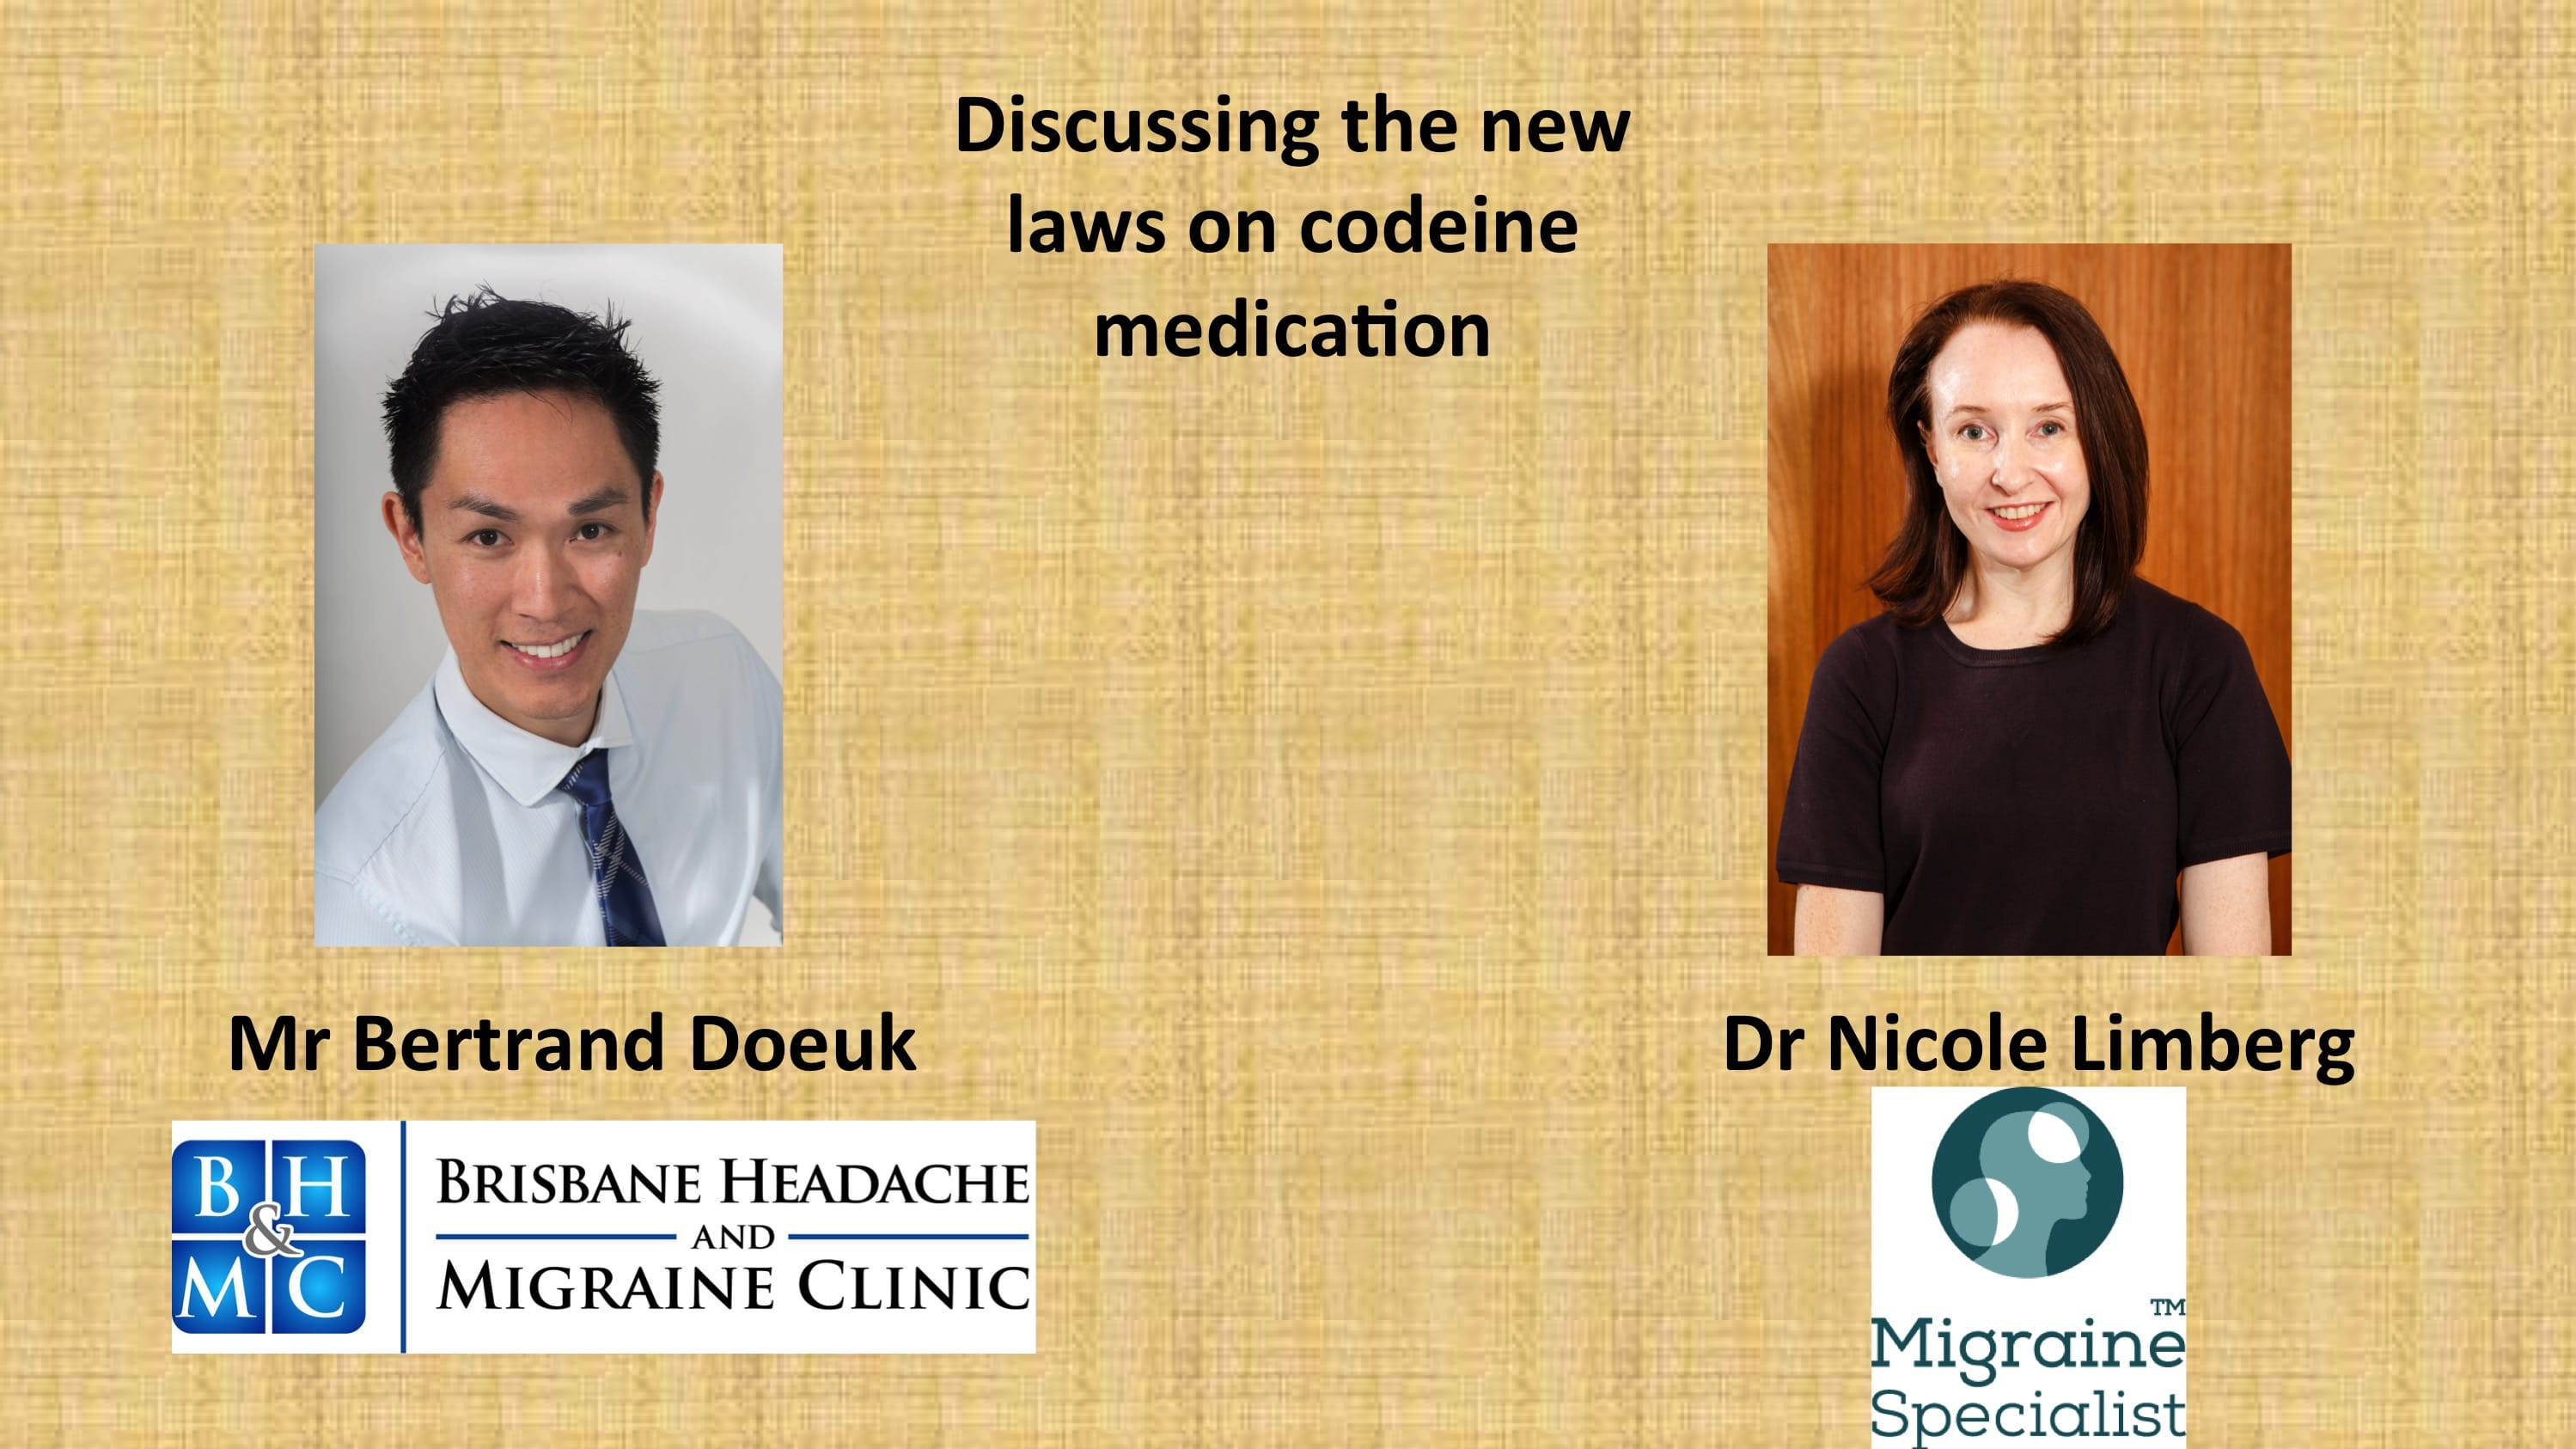 Migraine Health News – New Over-the-Counter Medication Laws. Dr Nicole Limberg and Bertrand Doeuk's Discussion